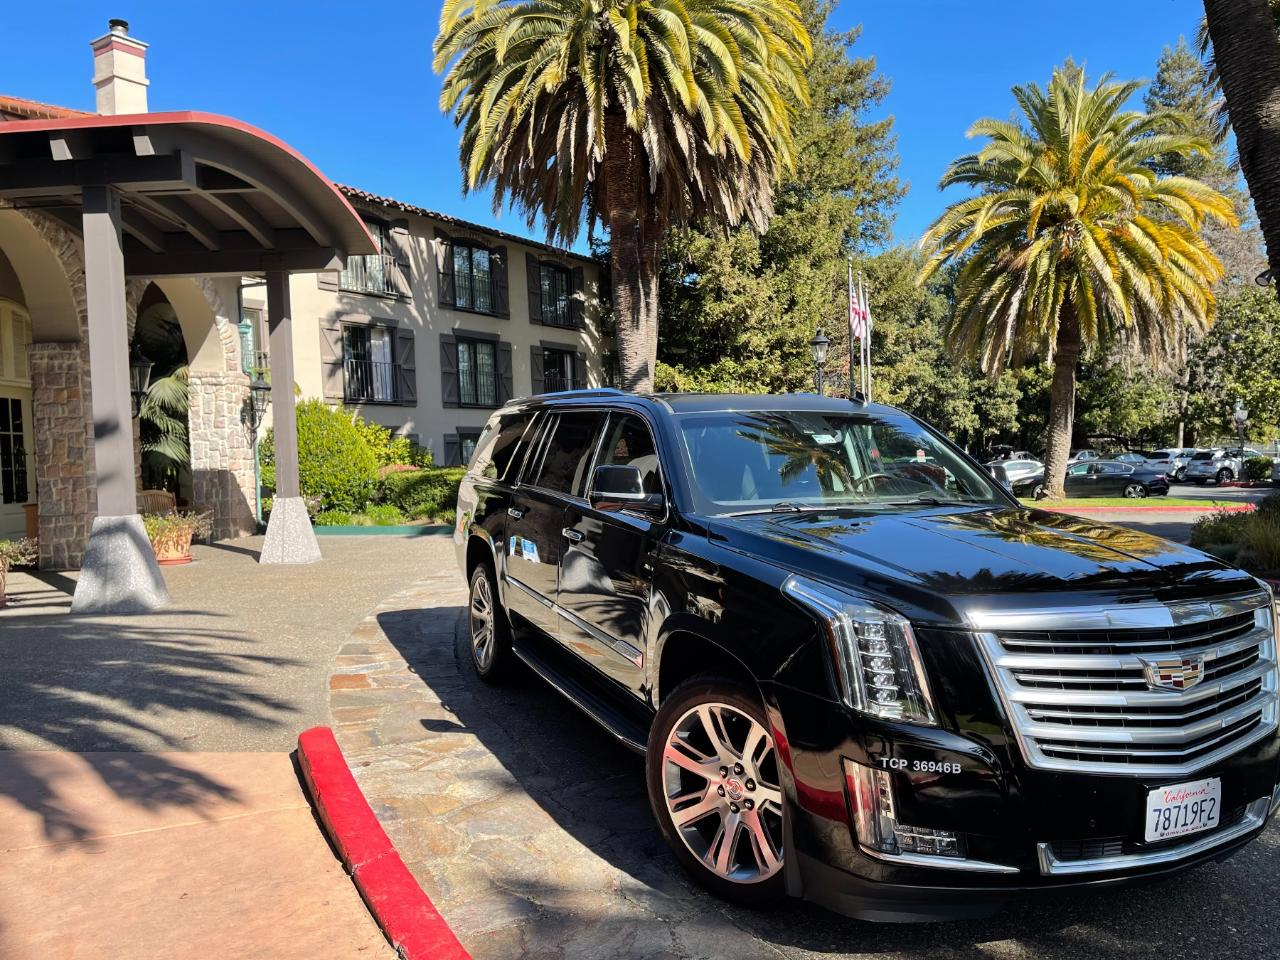 Cadillac Escalade Service, for up to 6 Guests @ $85/Hr. everyday with a 6 Hour Minimum.